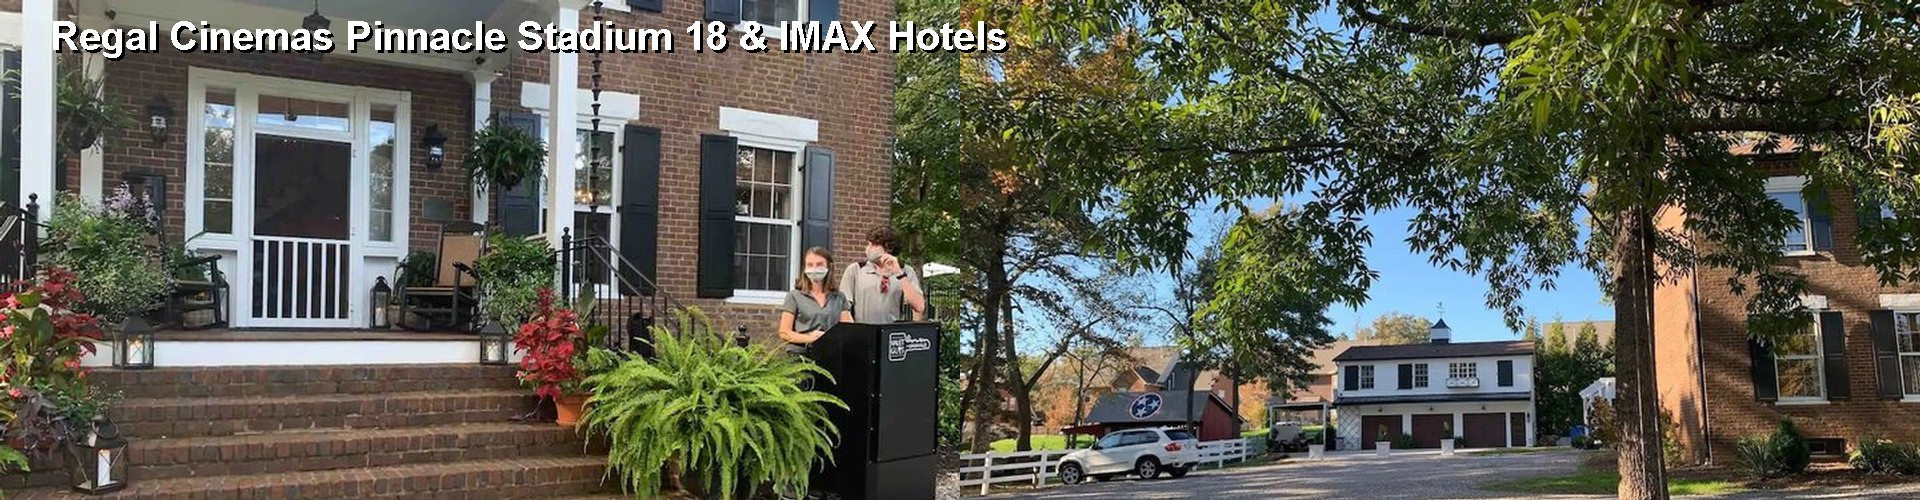 5 Best Hotels Near Regal Cinemas Pinnacle Stadium 18 Imax